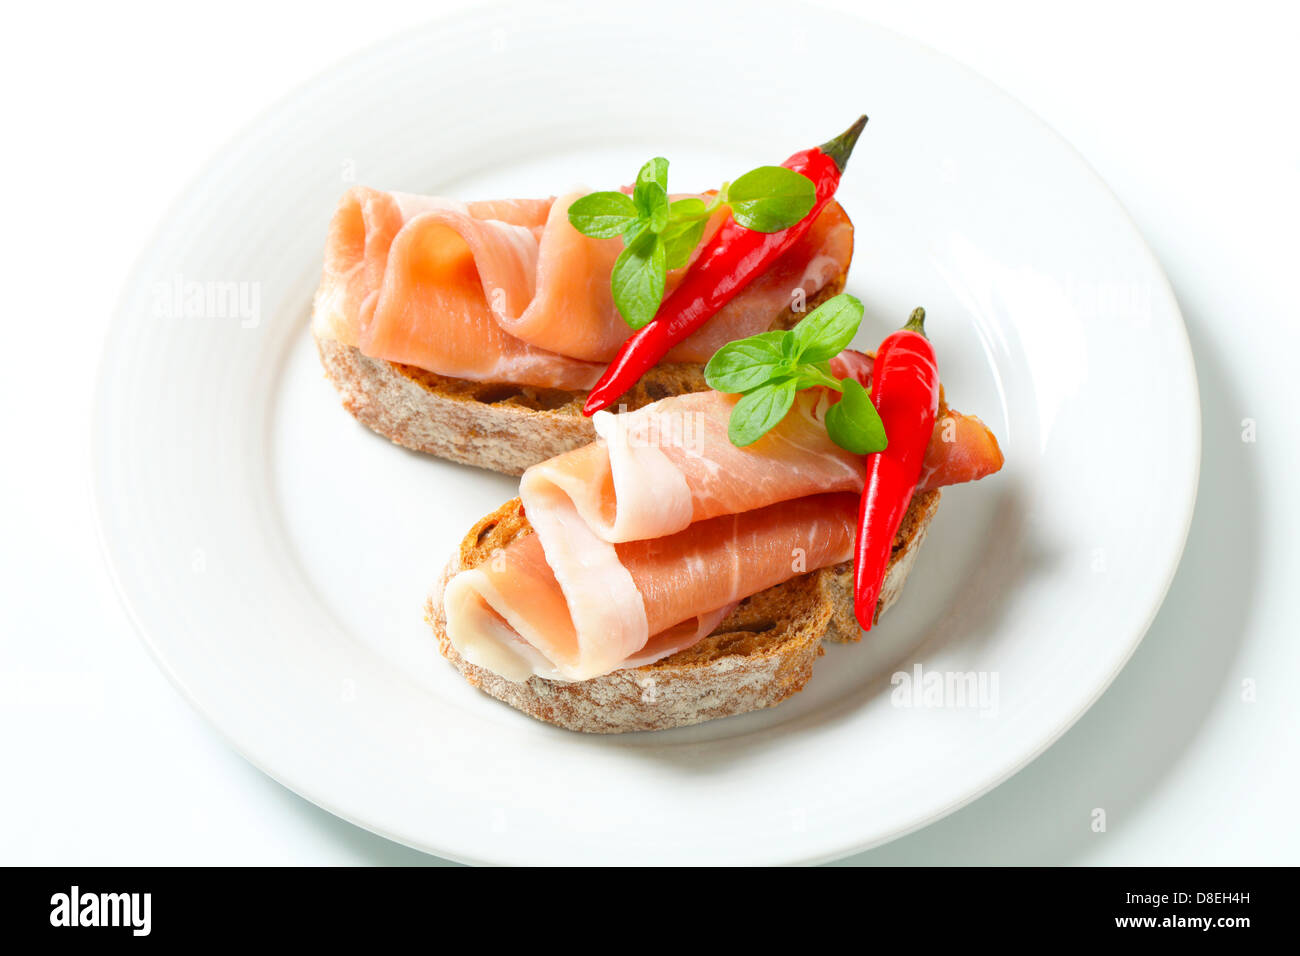 Prosciutto open faced sandwiches garnished with red chili peppers - Stock Image